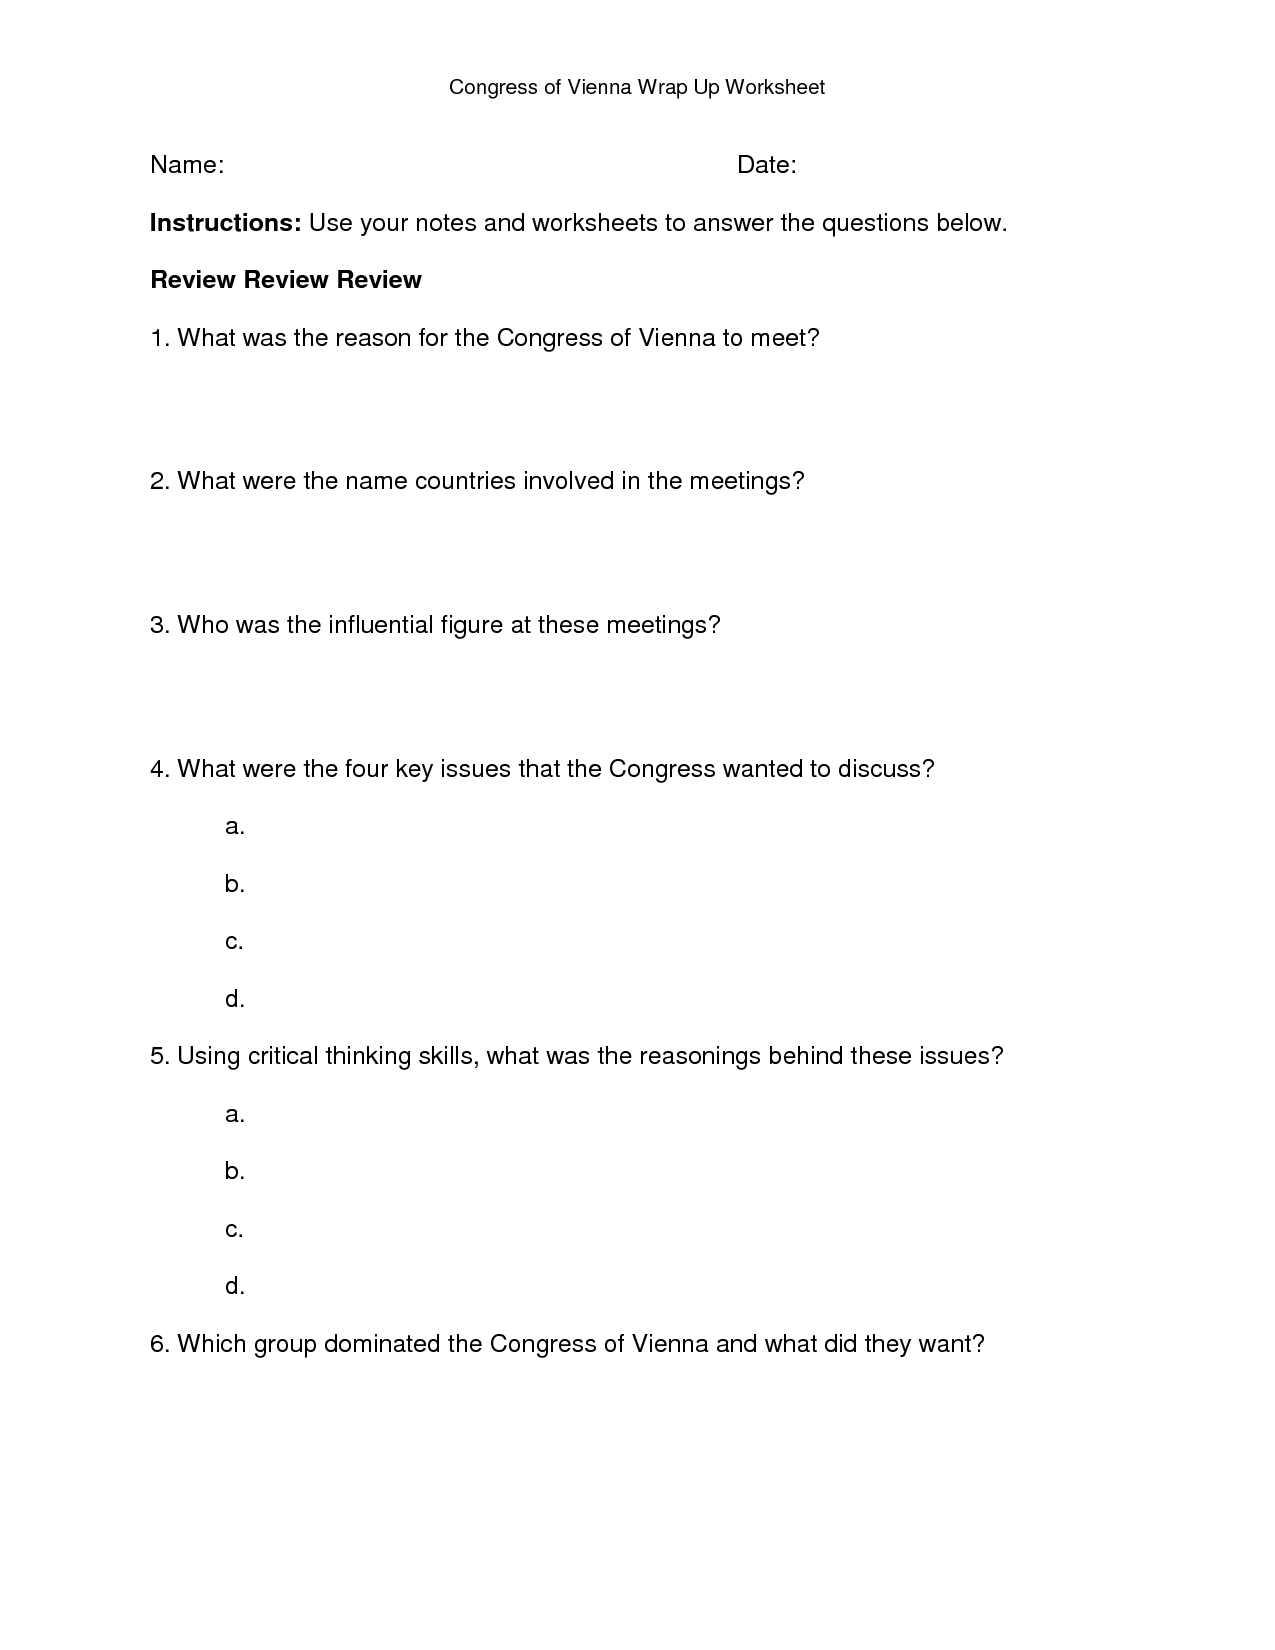 The Congress Worksheet Answers